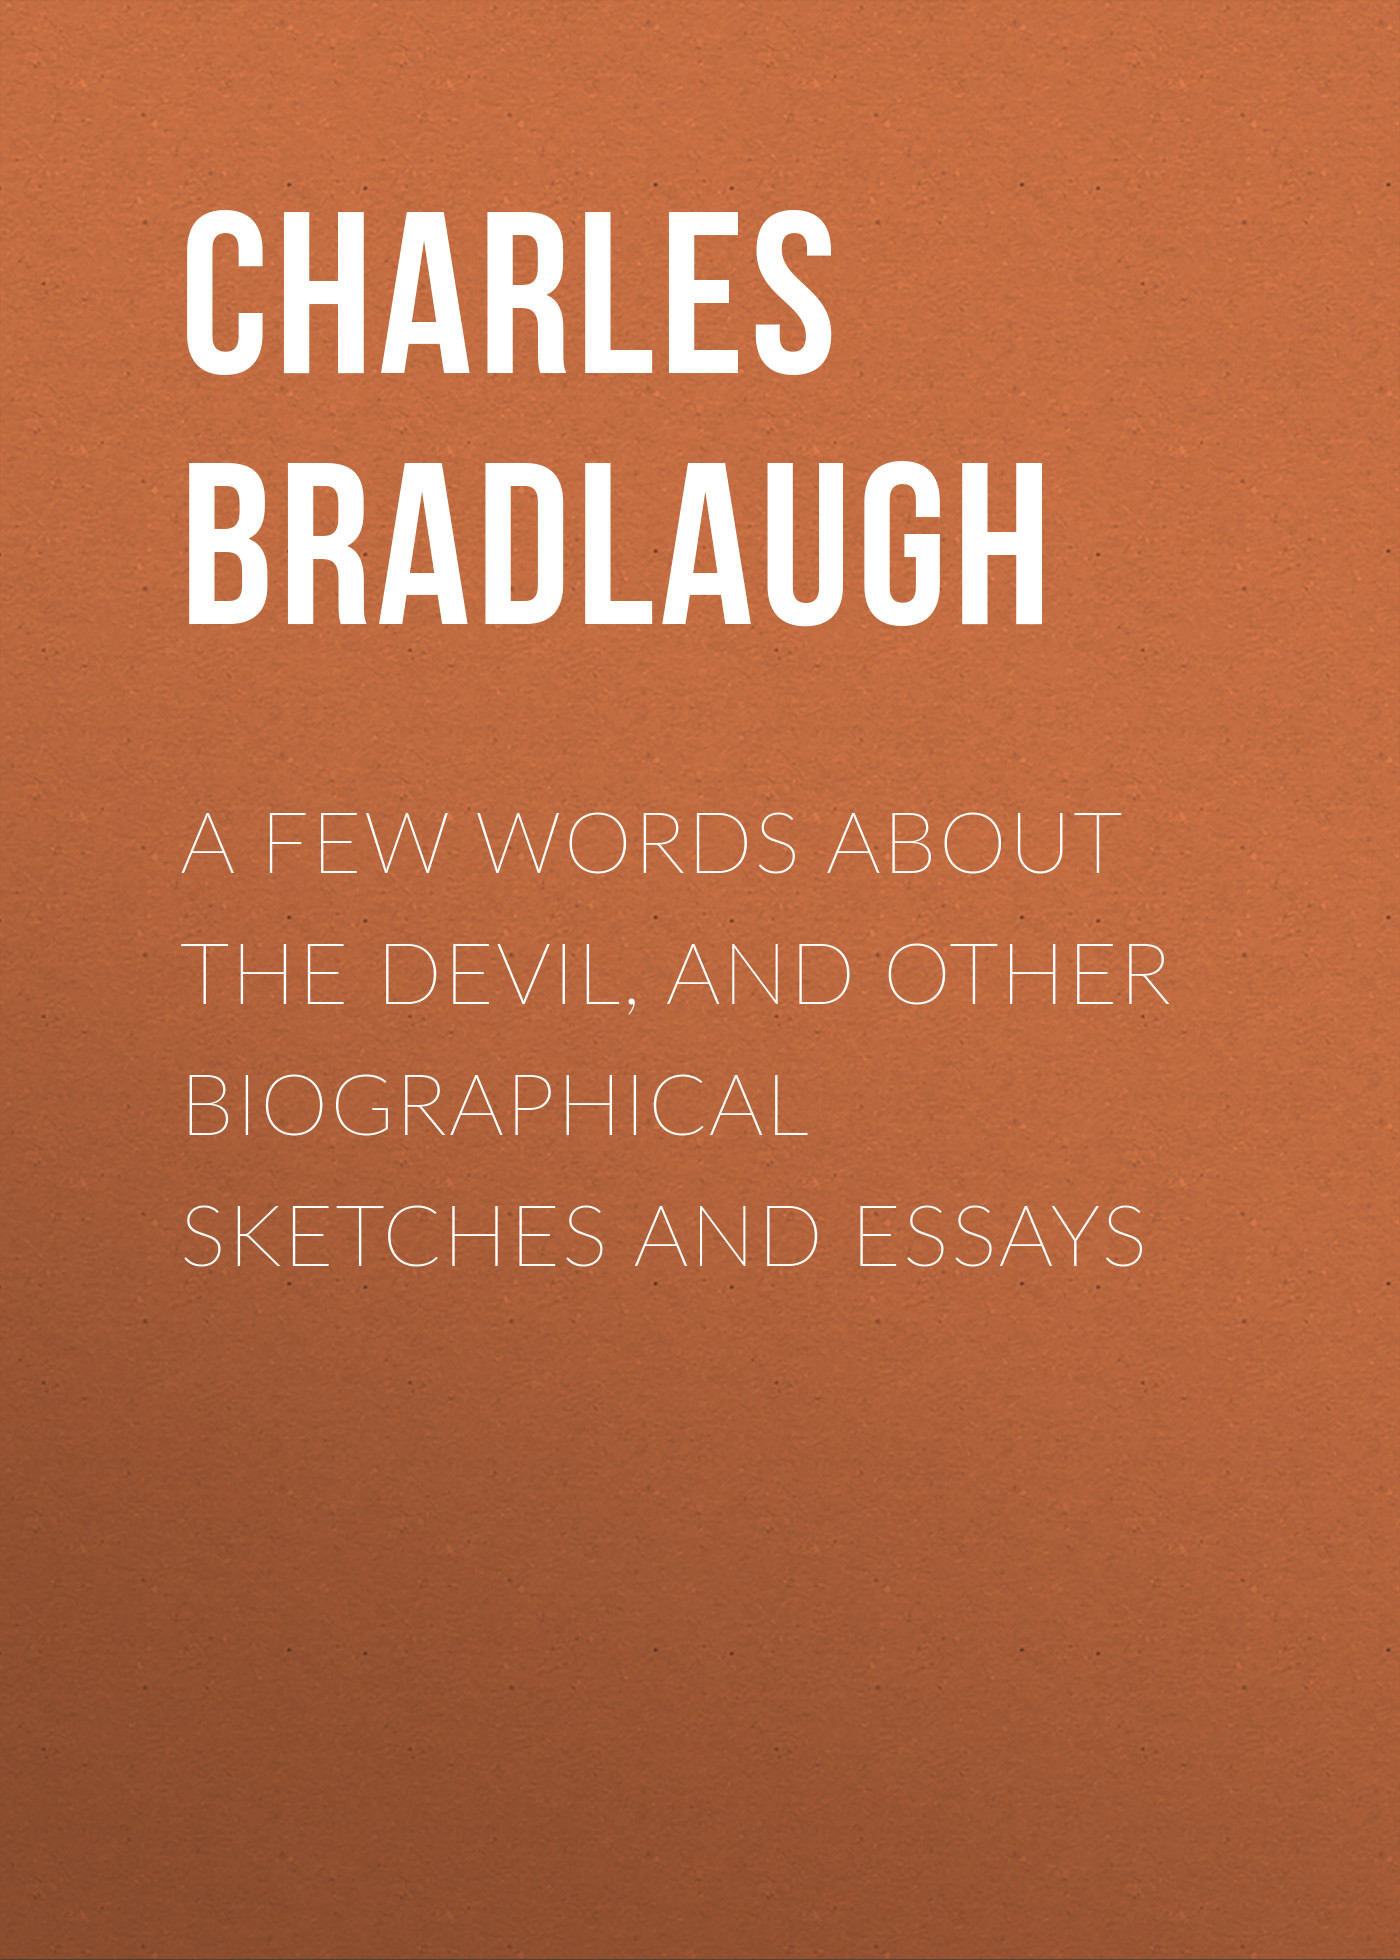 Bradlaugh Charles A Few Words About the Devil, and Other Biographical Sketches and Essays herman melville the apple tree table and other sketches